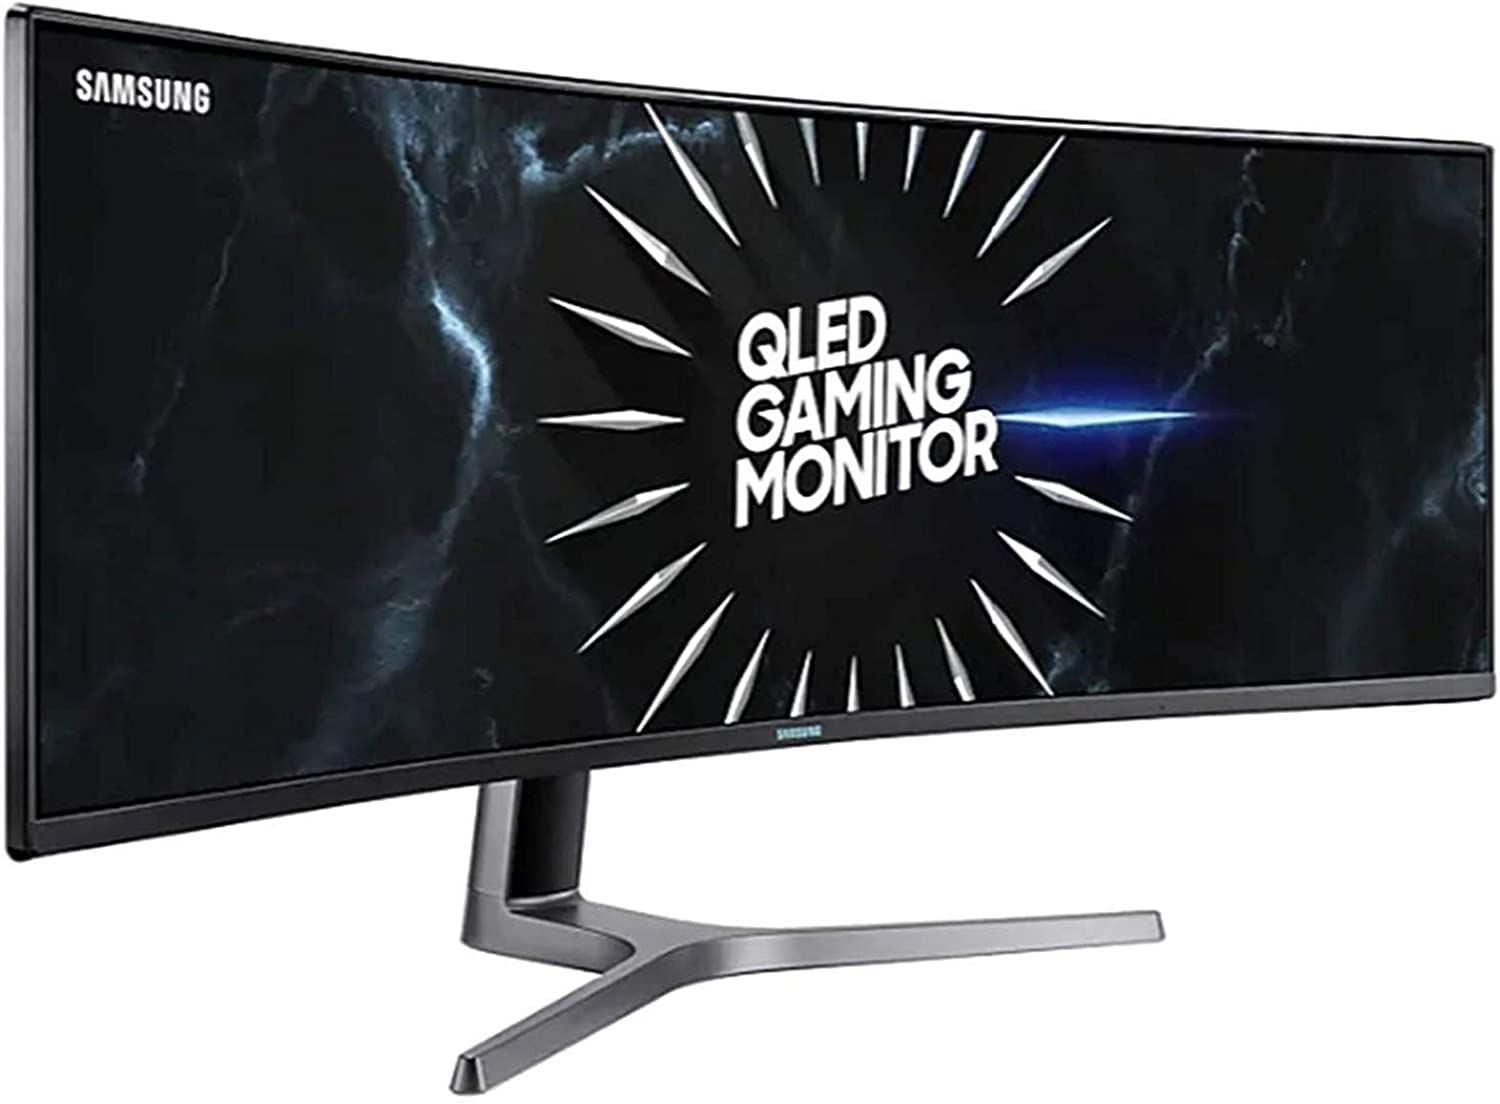 Amazon Com C49rg90 Qled Super Ultra Wide Gaming Monitor With Dual Qhd 5120 X 1440 Computers Accessories